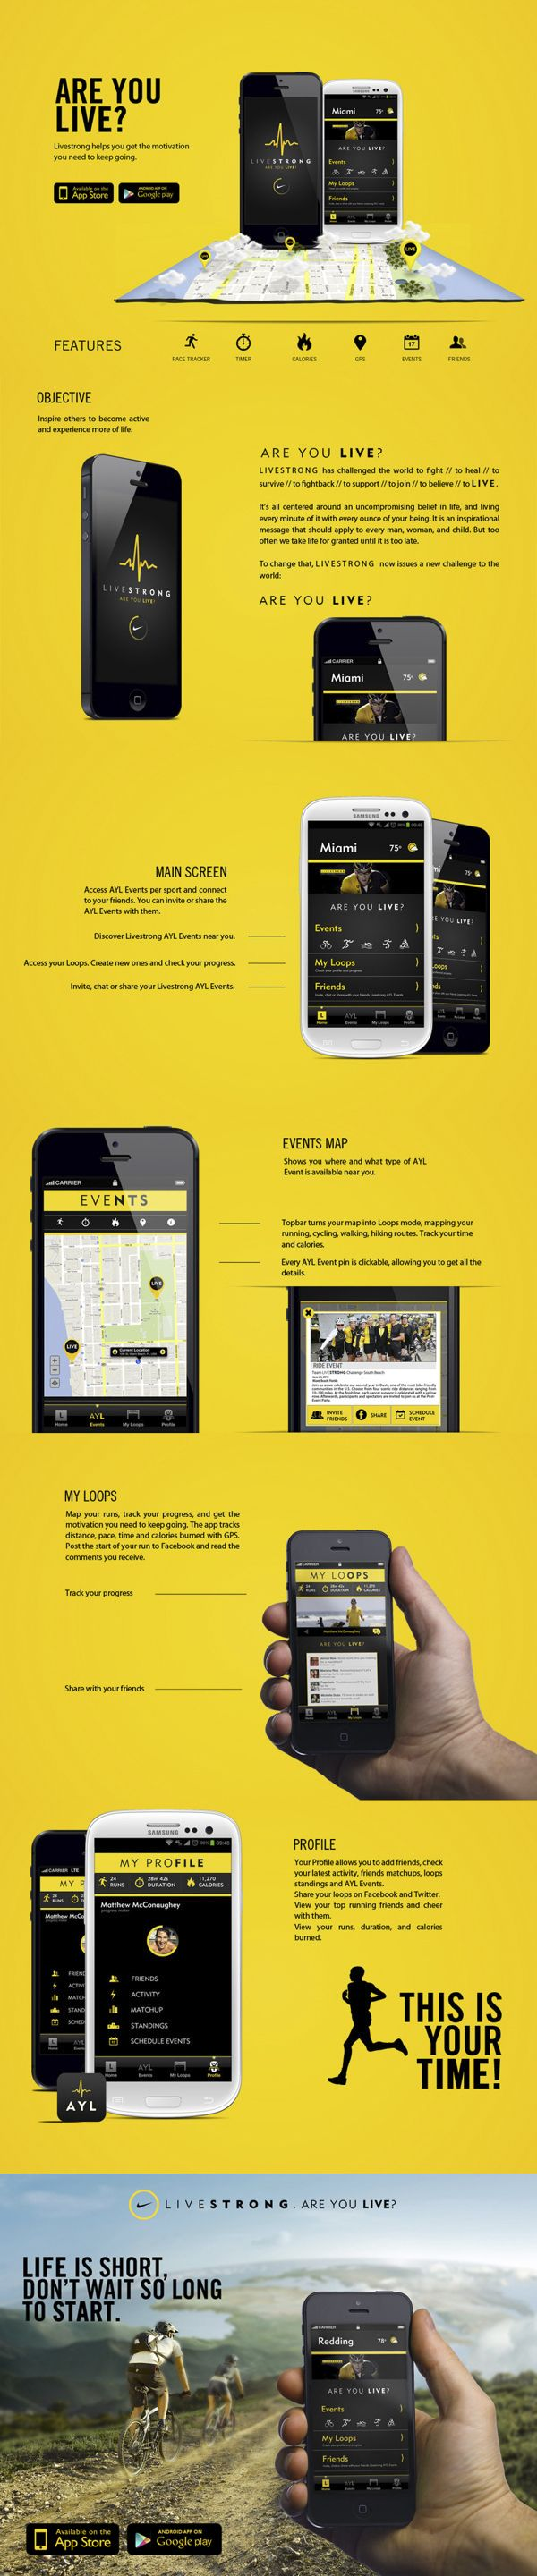 Livestrong // Are You Live? by Andres Schiling, via Behance *** Livestrong is an inspirational brand as a leader in the fight agaisnt cancer. How can the brand inspire others to appreciate life regardless of their connection to cancer?